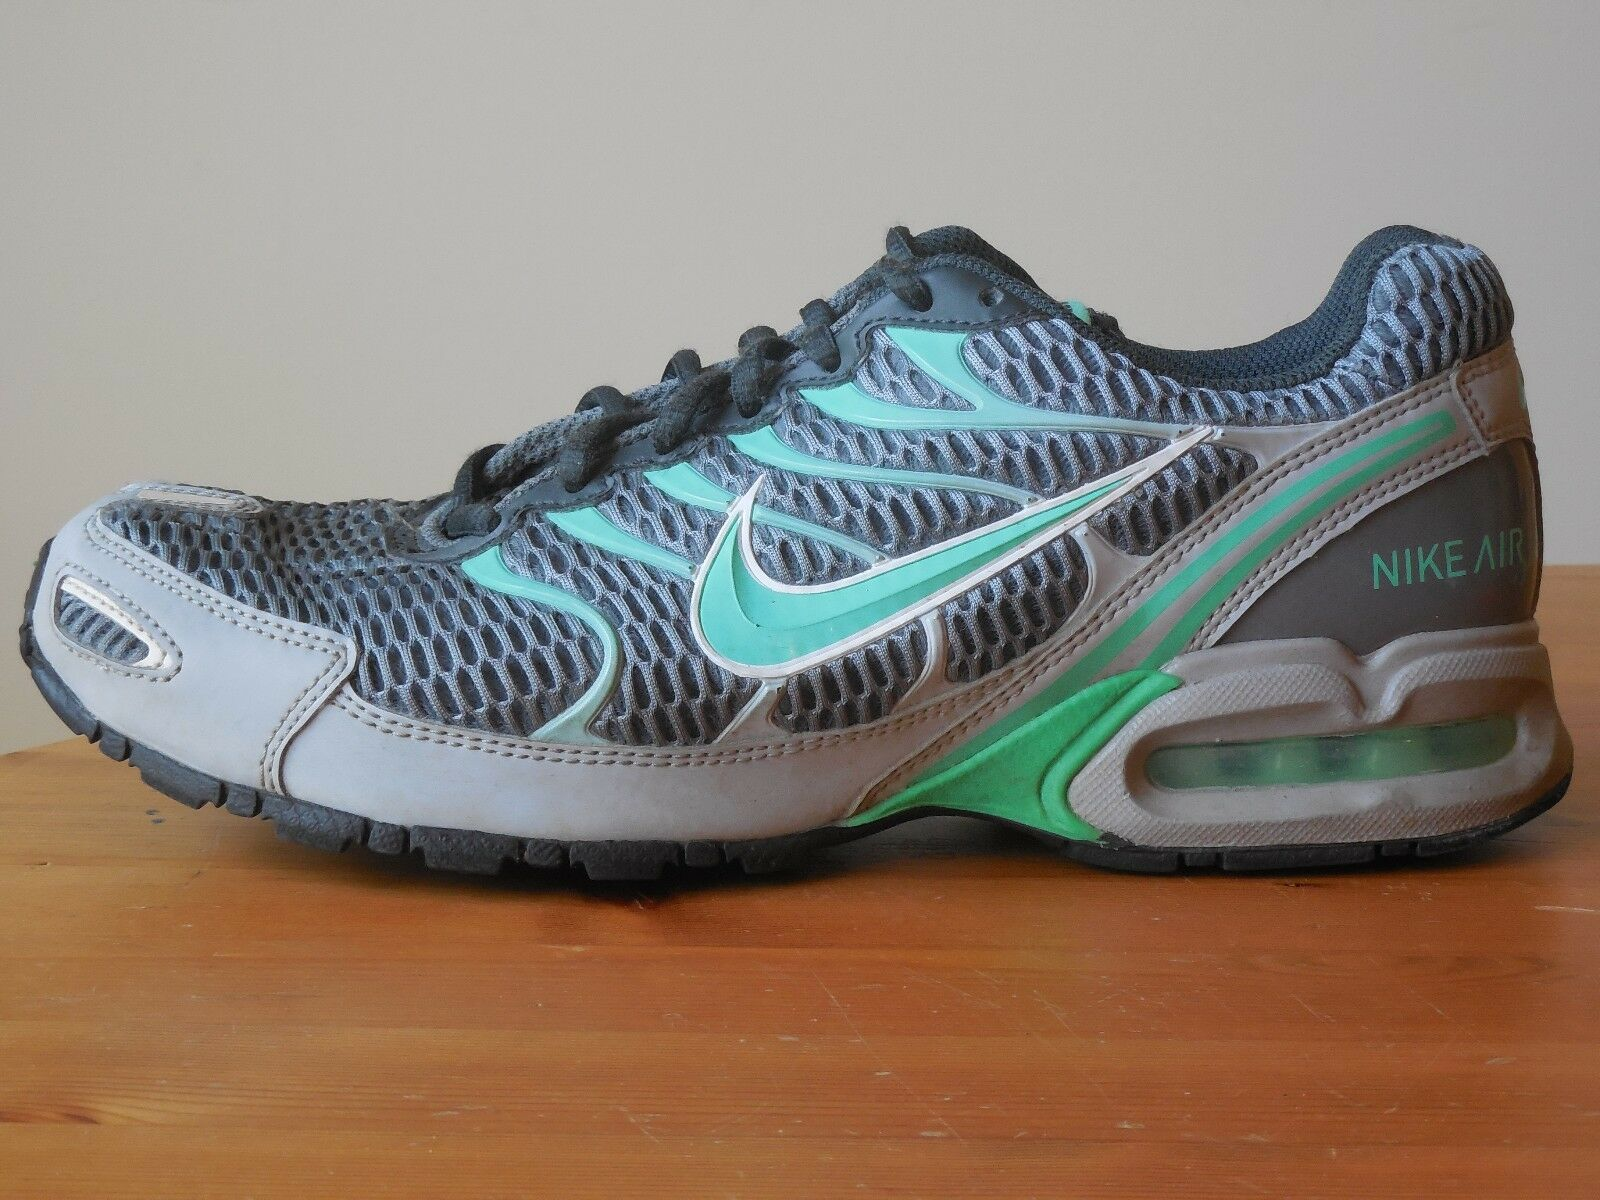 Nike Air Max Torch 4 Training Running Shoes Men's Comfortable New shoes for men and women, limited time discount